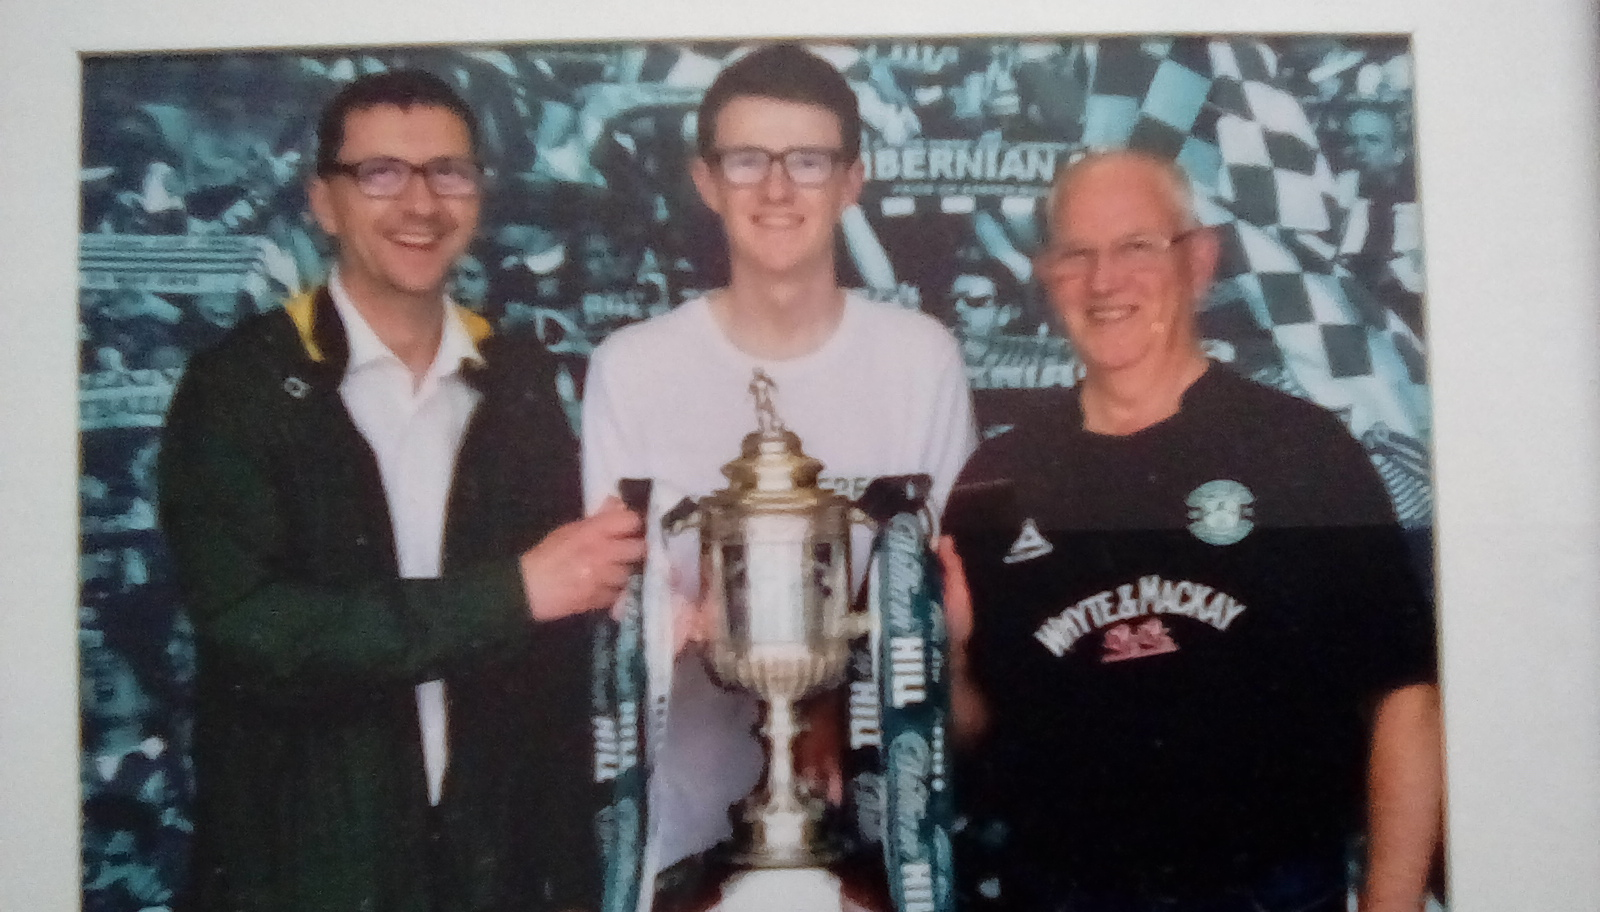 https://hiberniansupporters.co.uk/refer-a-friend-season-ticket-winner/